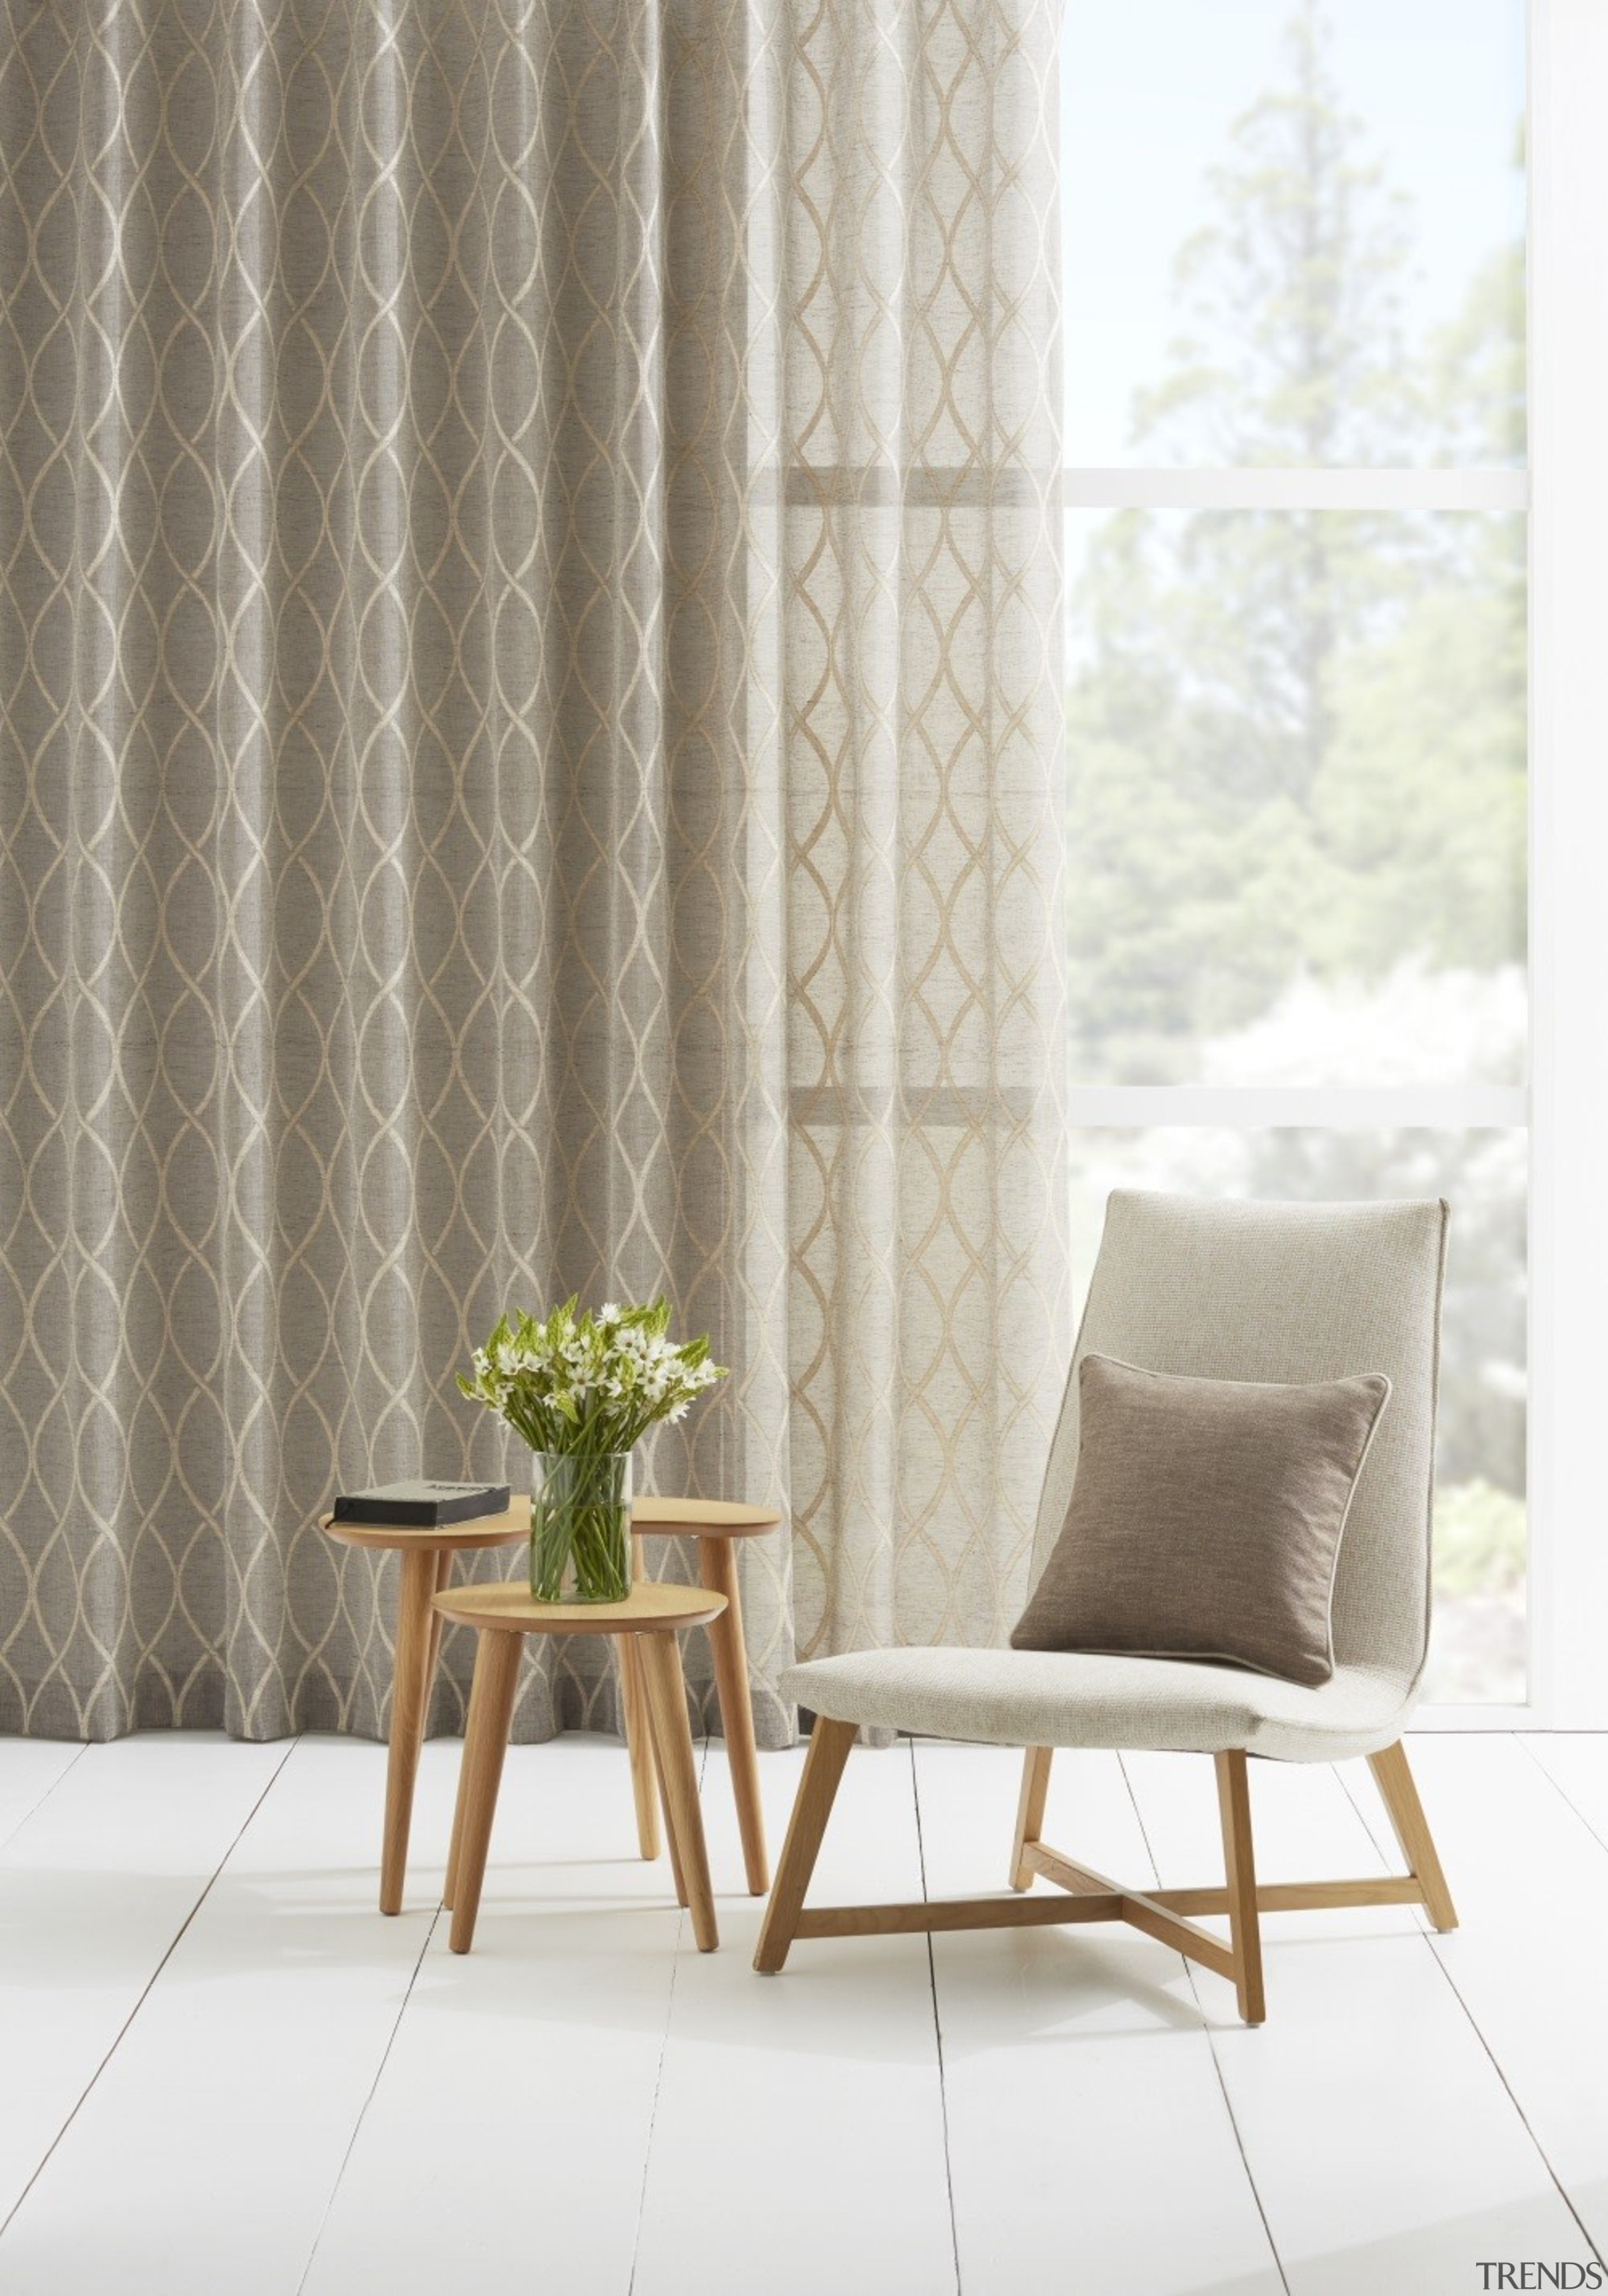 Harrisons Curtains - Harrisons Curtains - chair | chair, curtain, decor, floor, furniture, interior design, product design, table, textile, window, window covering, window treatment, white, gray